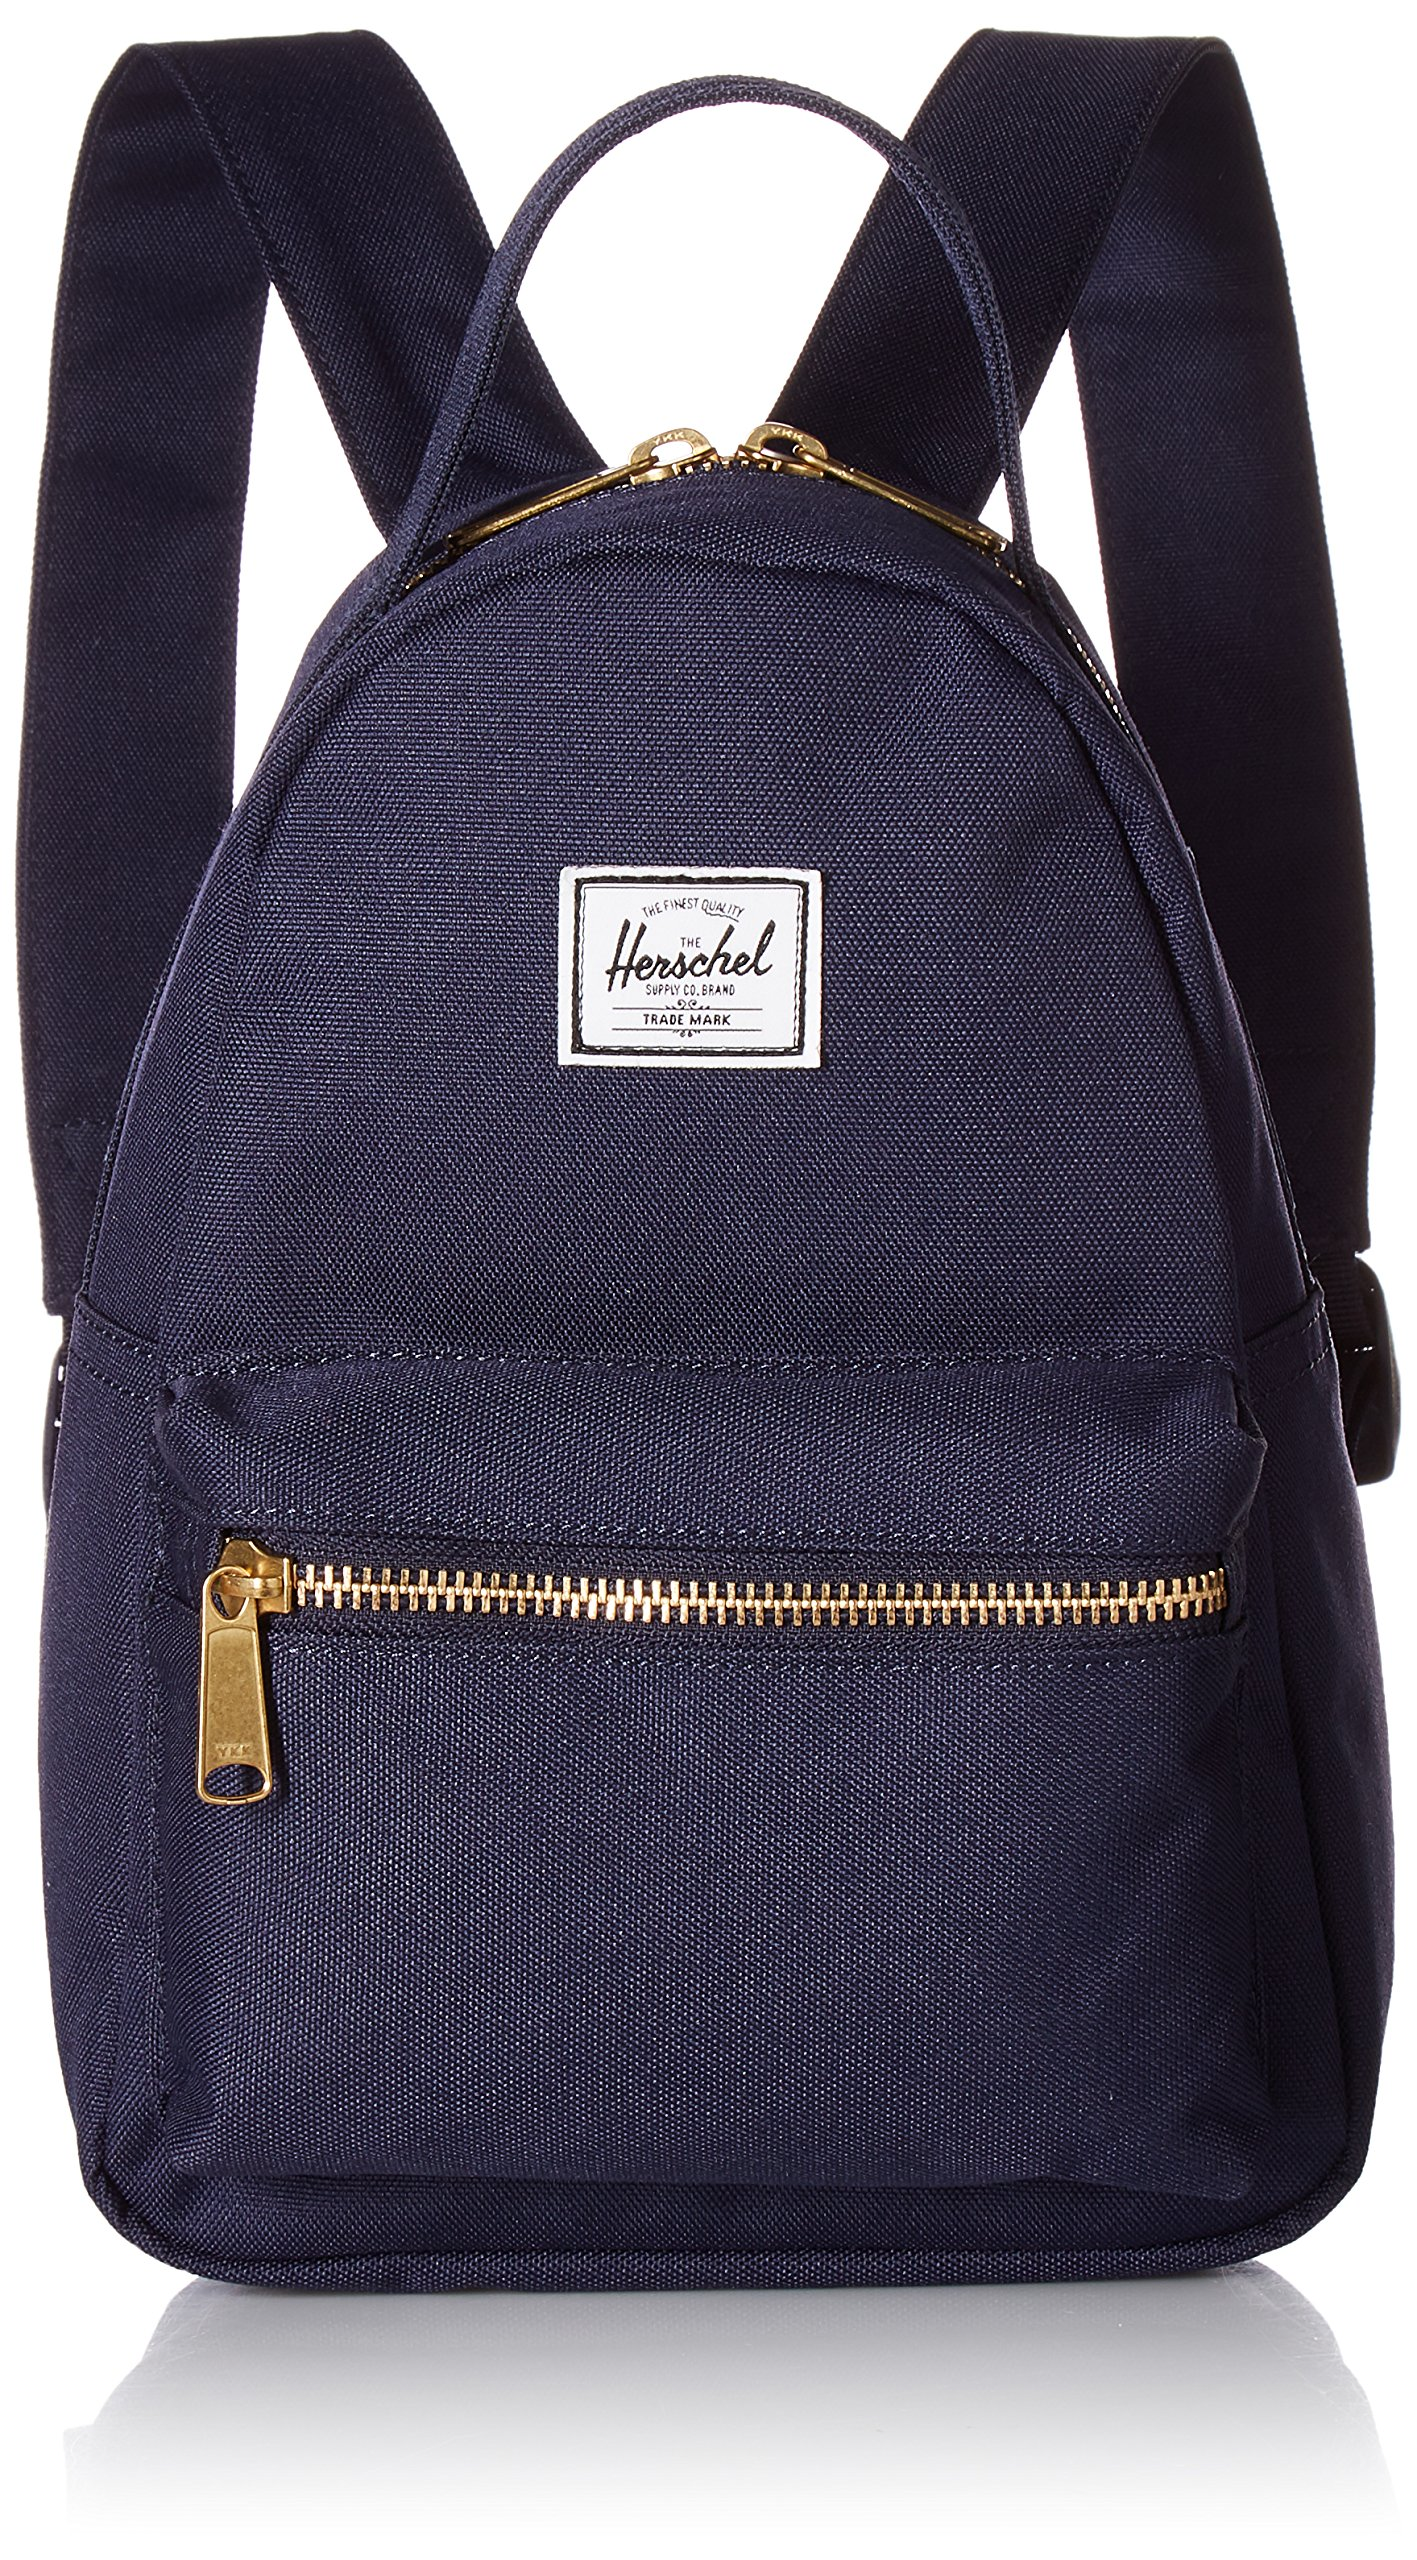 Herschel Supply Co. Nova Mini Backpack, Peacoat, One Size